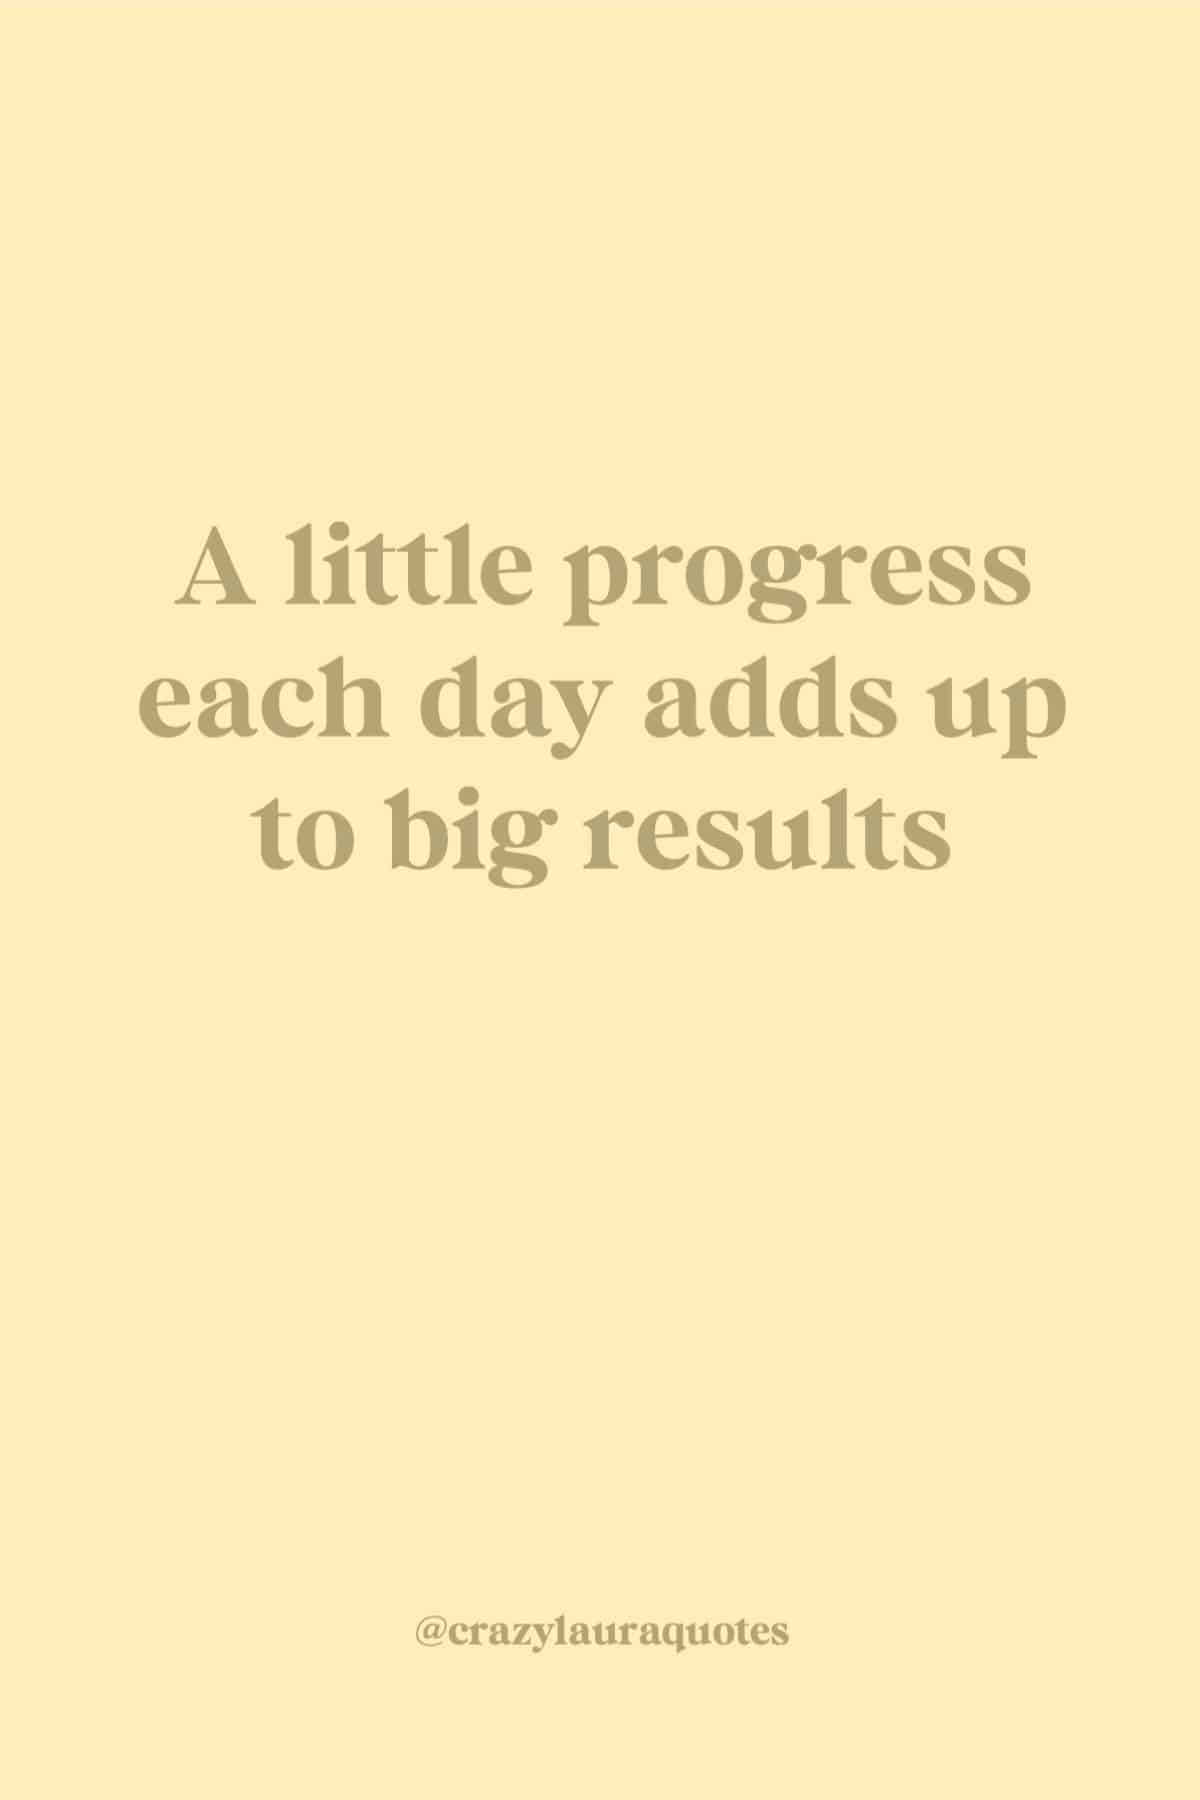 inspiring quote about seeing results